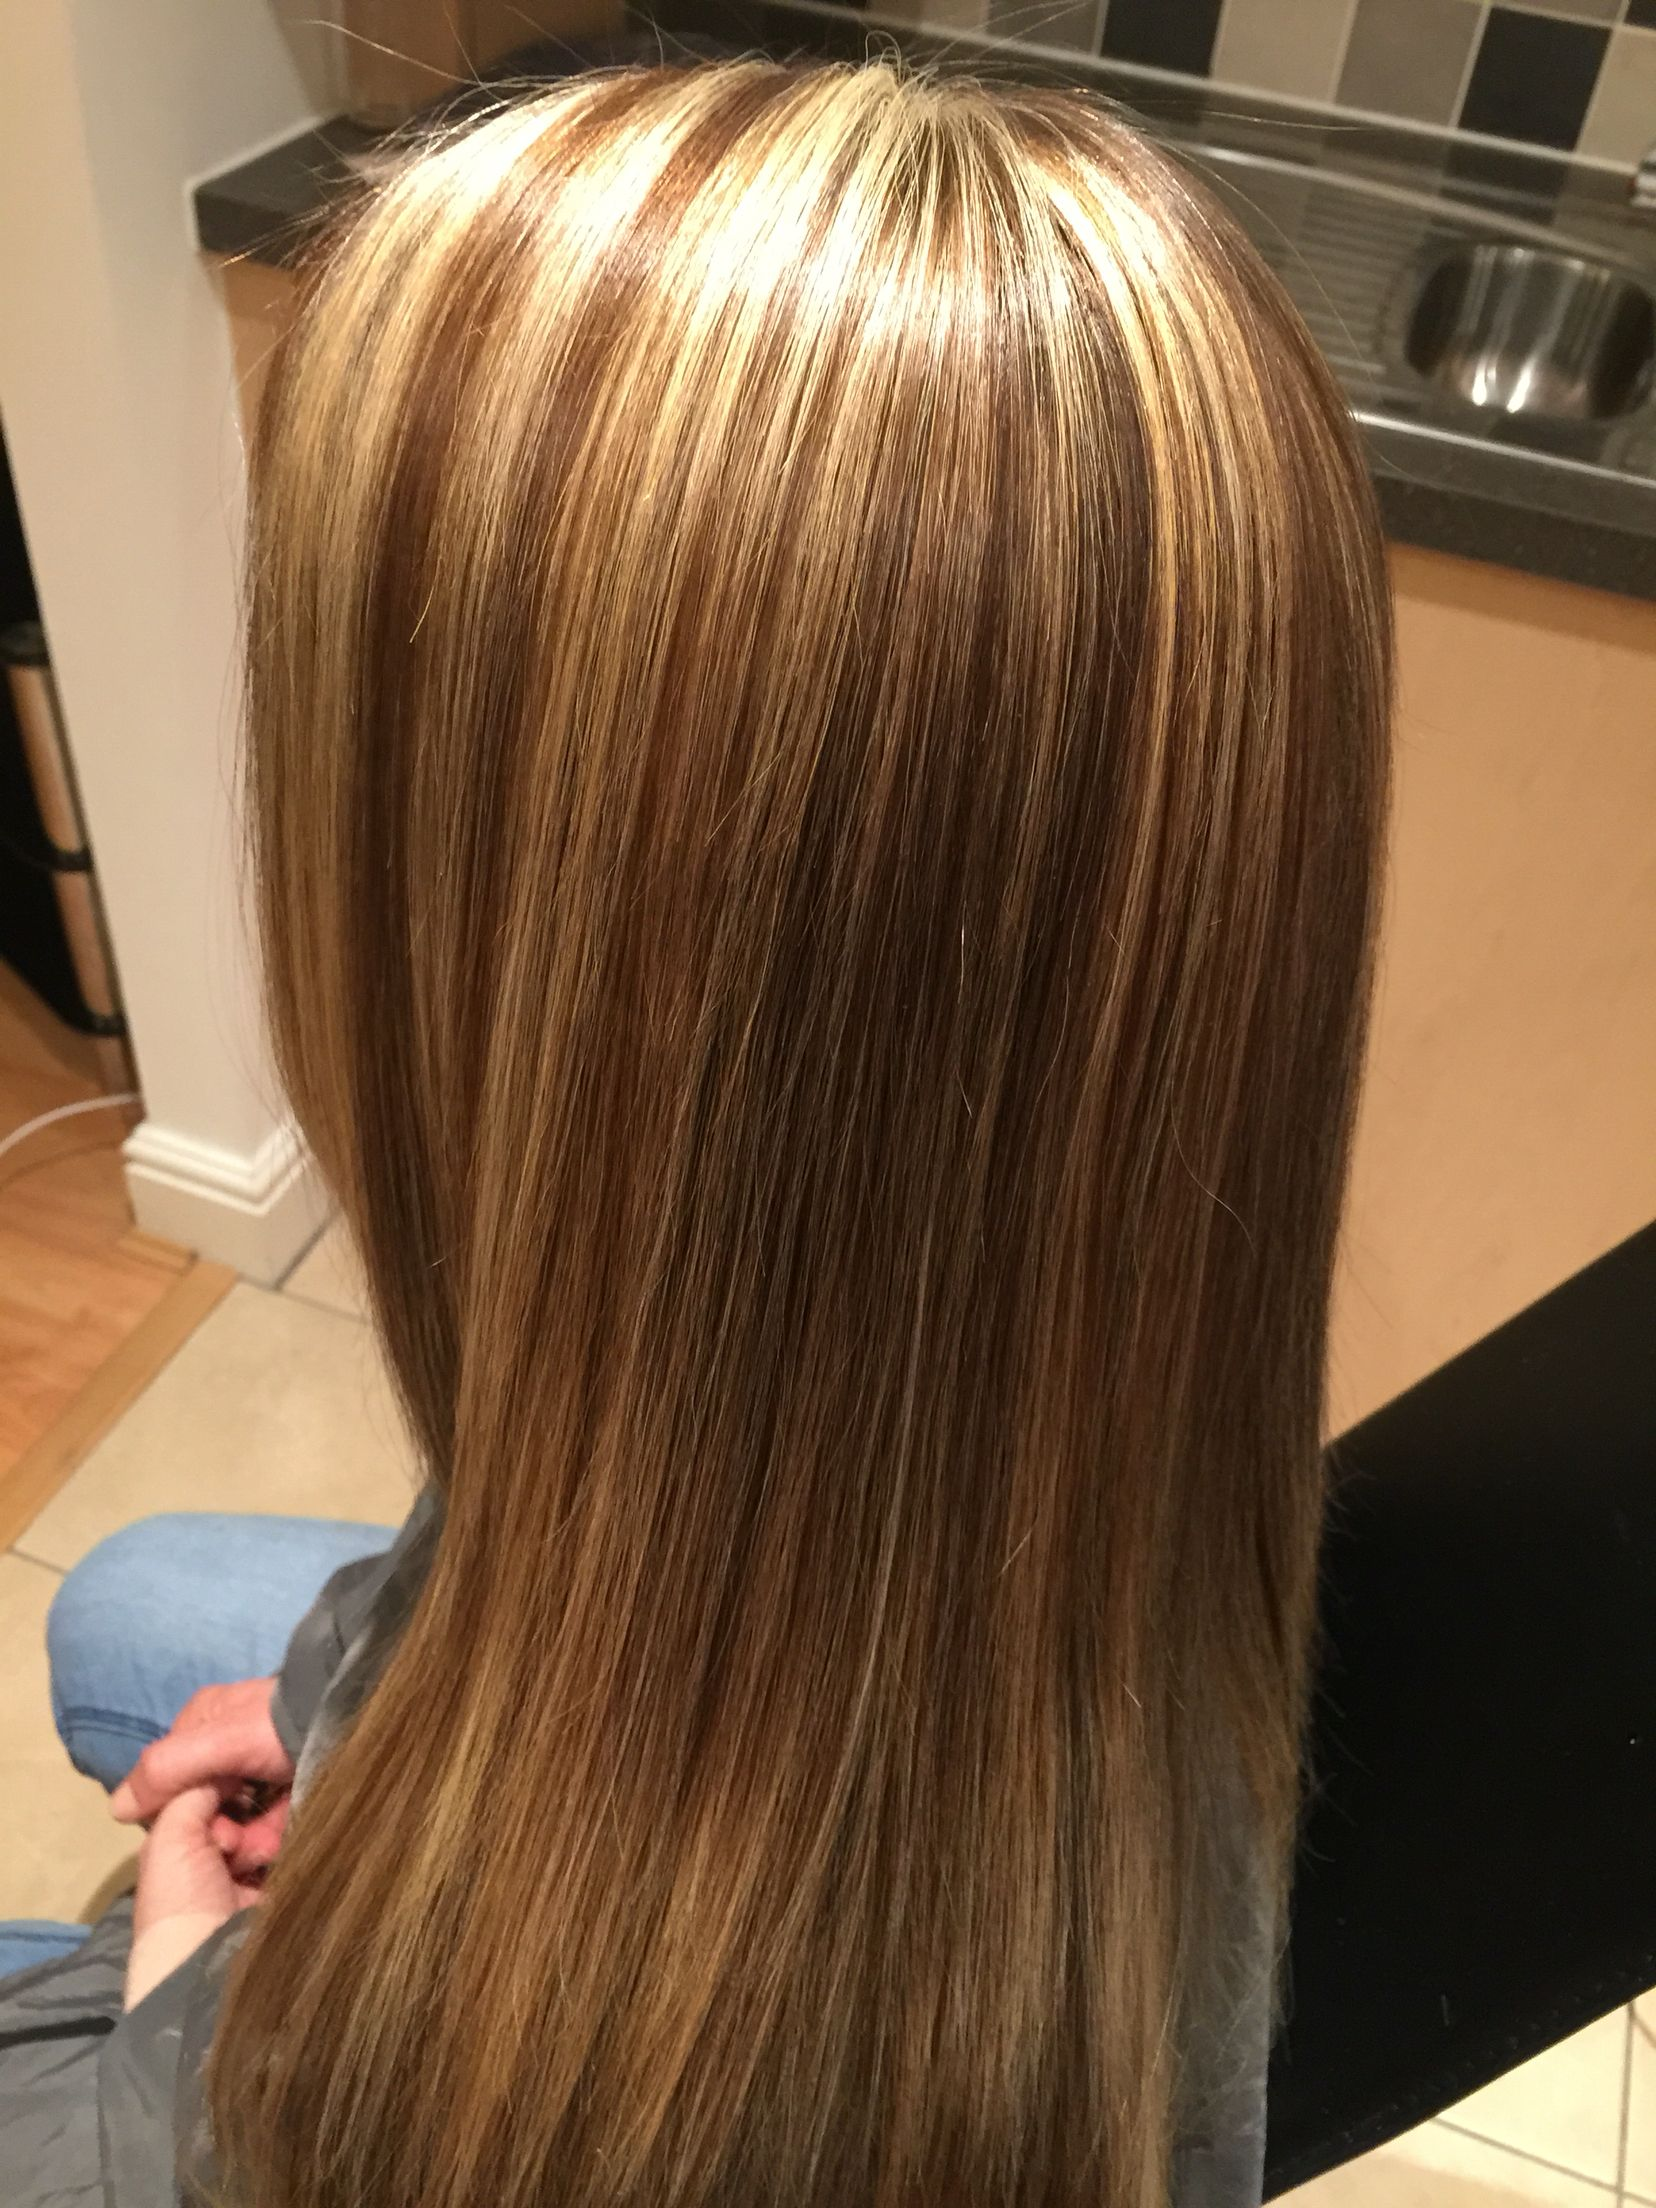 Pin by Marie Leroy on haircut | Brown blonde hair, Brown ...